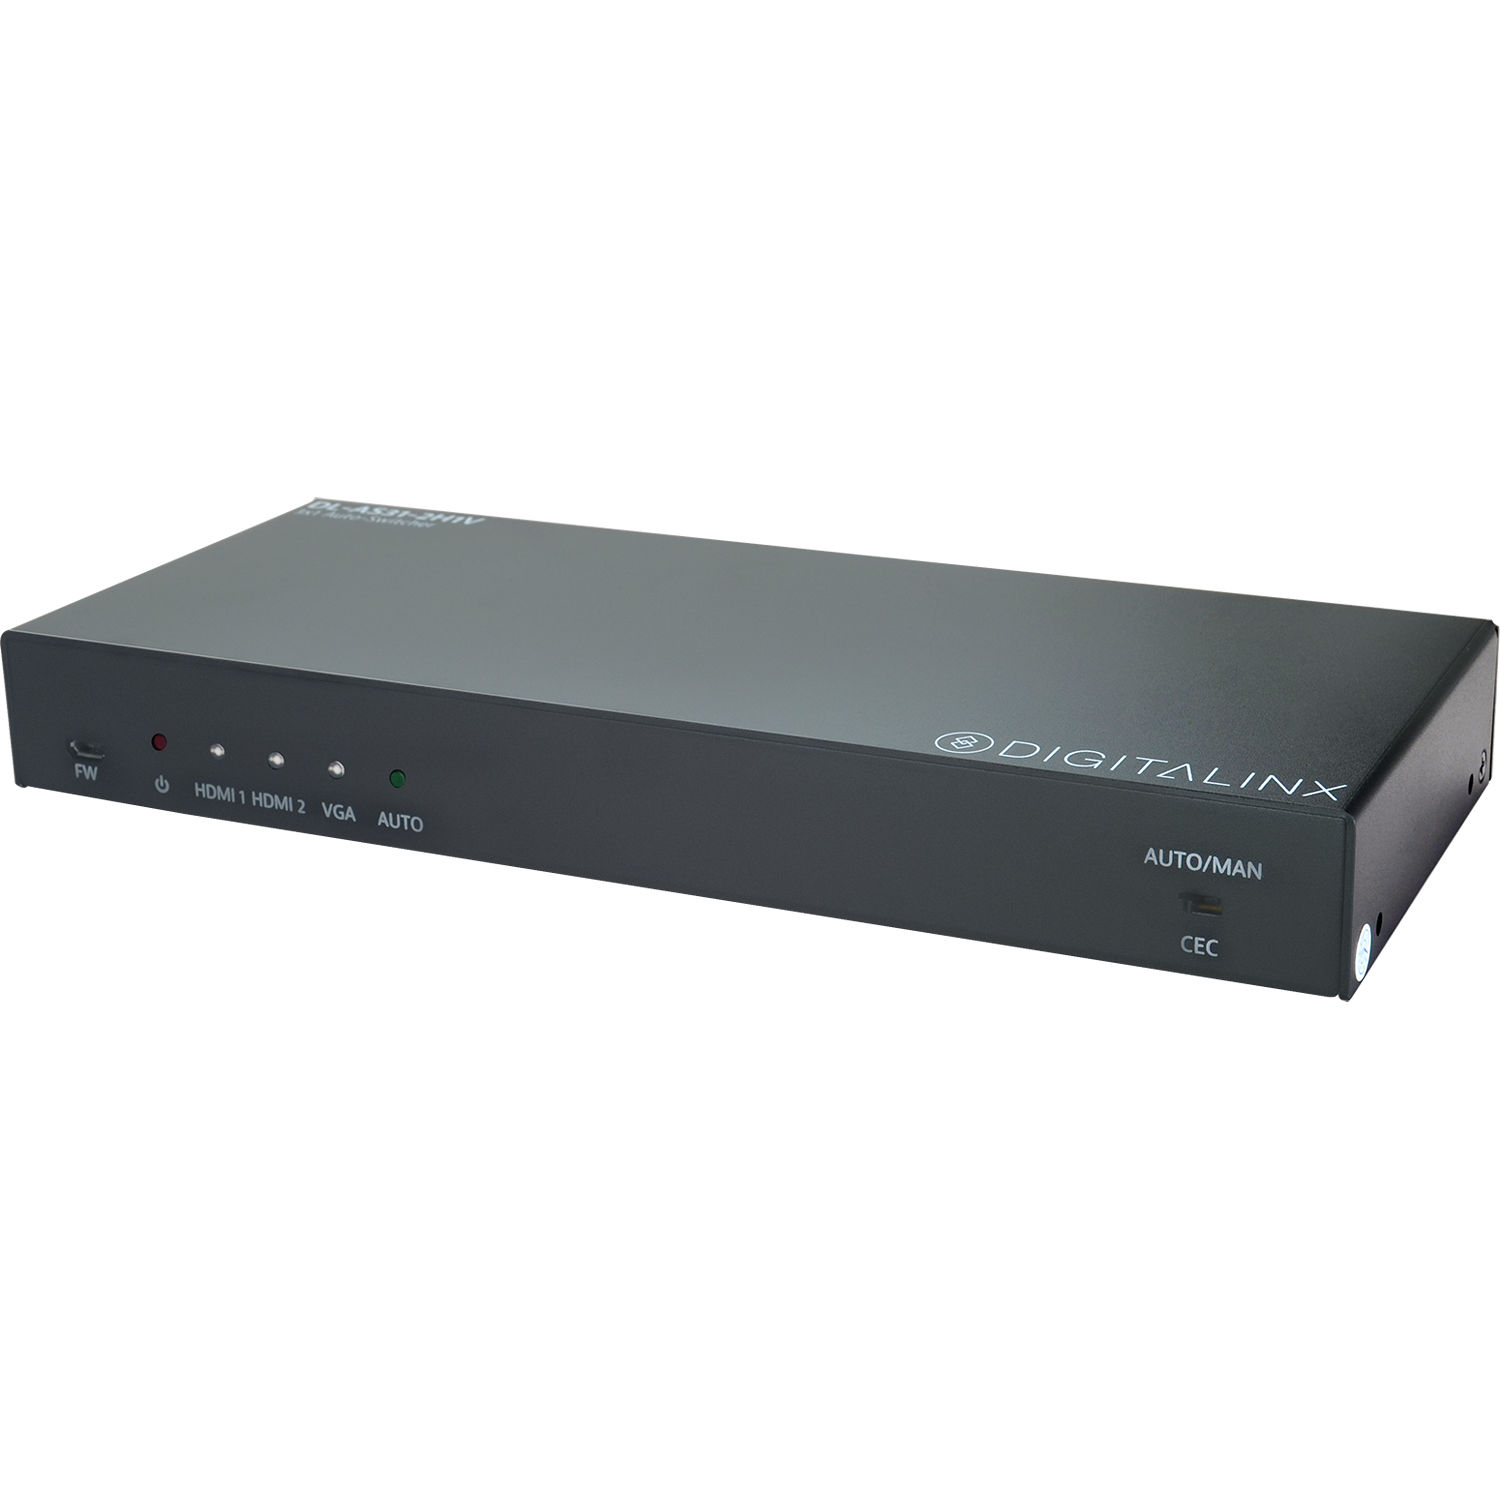 Enjoyable Digitalinx 3X1 Auto Switcher With 2 Hdmi 1 Dl As31 2H1V Wiring Cloud Philuggs Outletorg